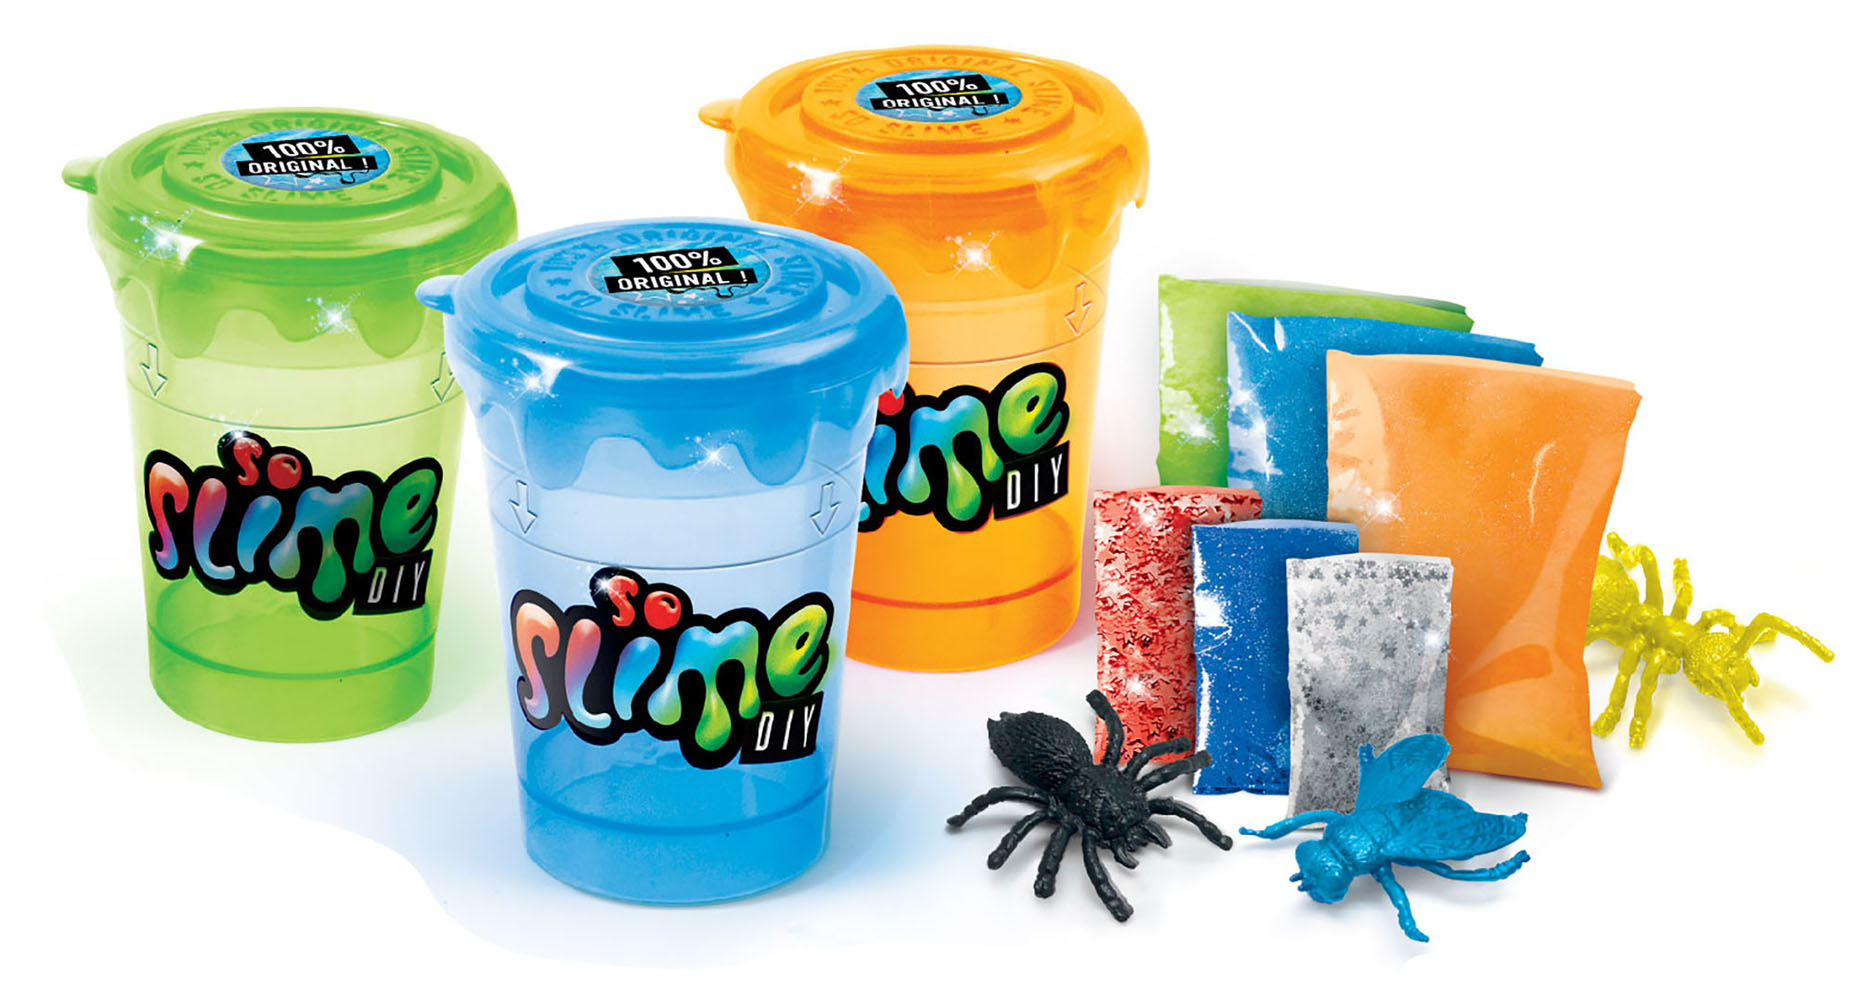 So Slime DIY - Slime Shakers Ensemble 3 pots de glu couleurs BOLD